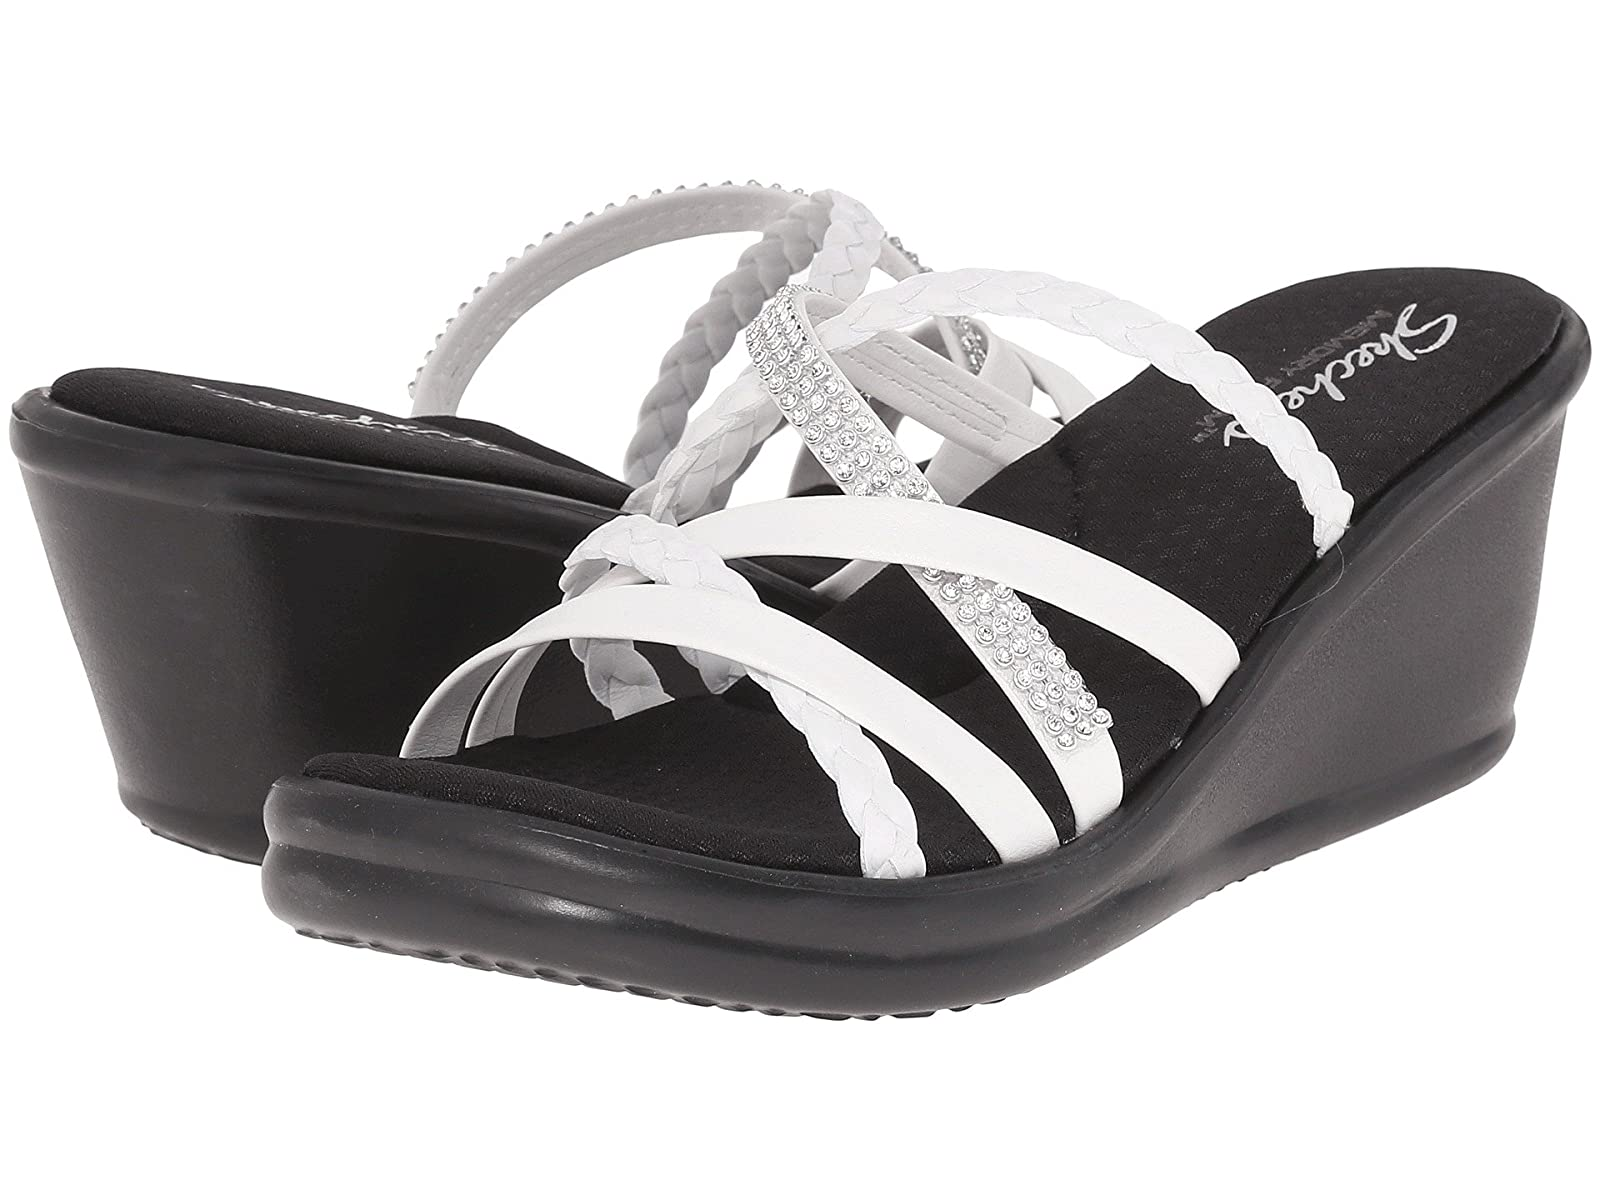 SKECHERS Rumblers - Wild ChildAtmospheric grades have affordable shoes